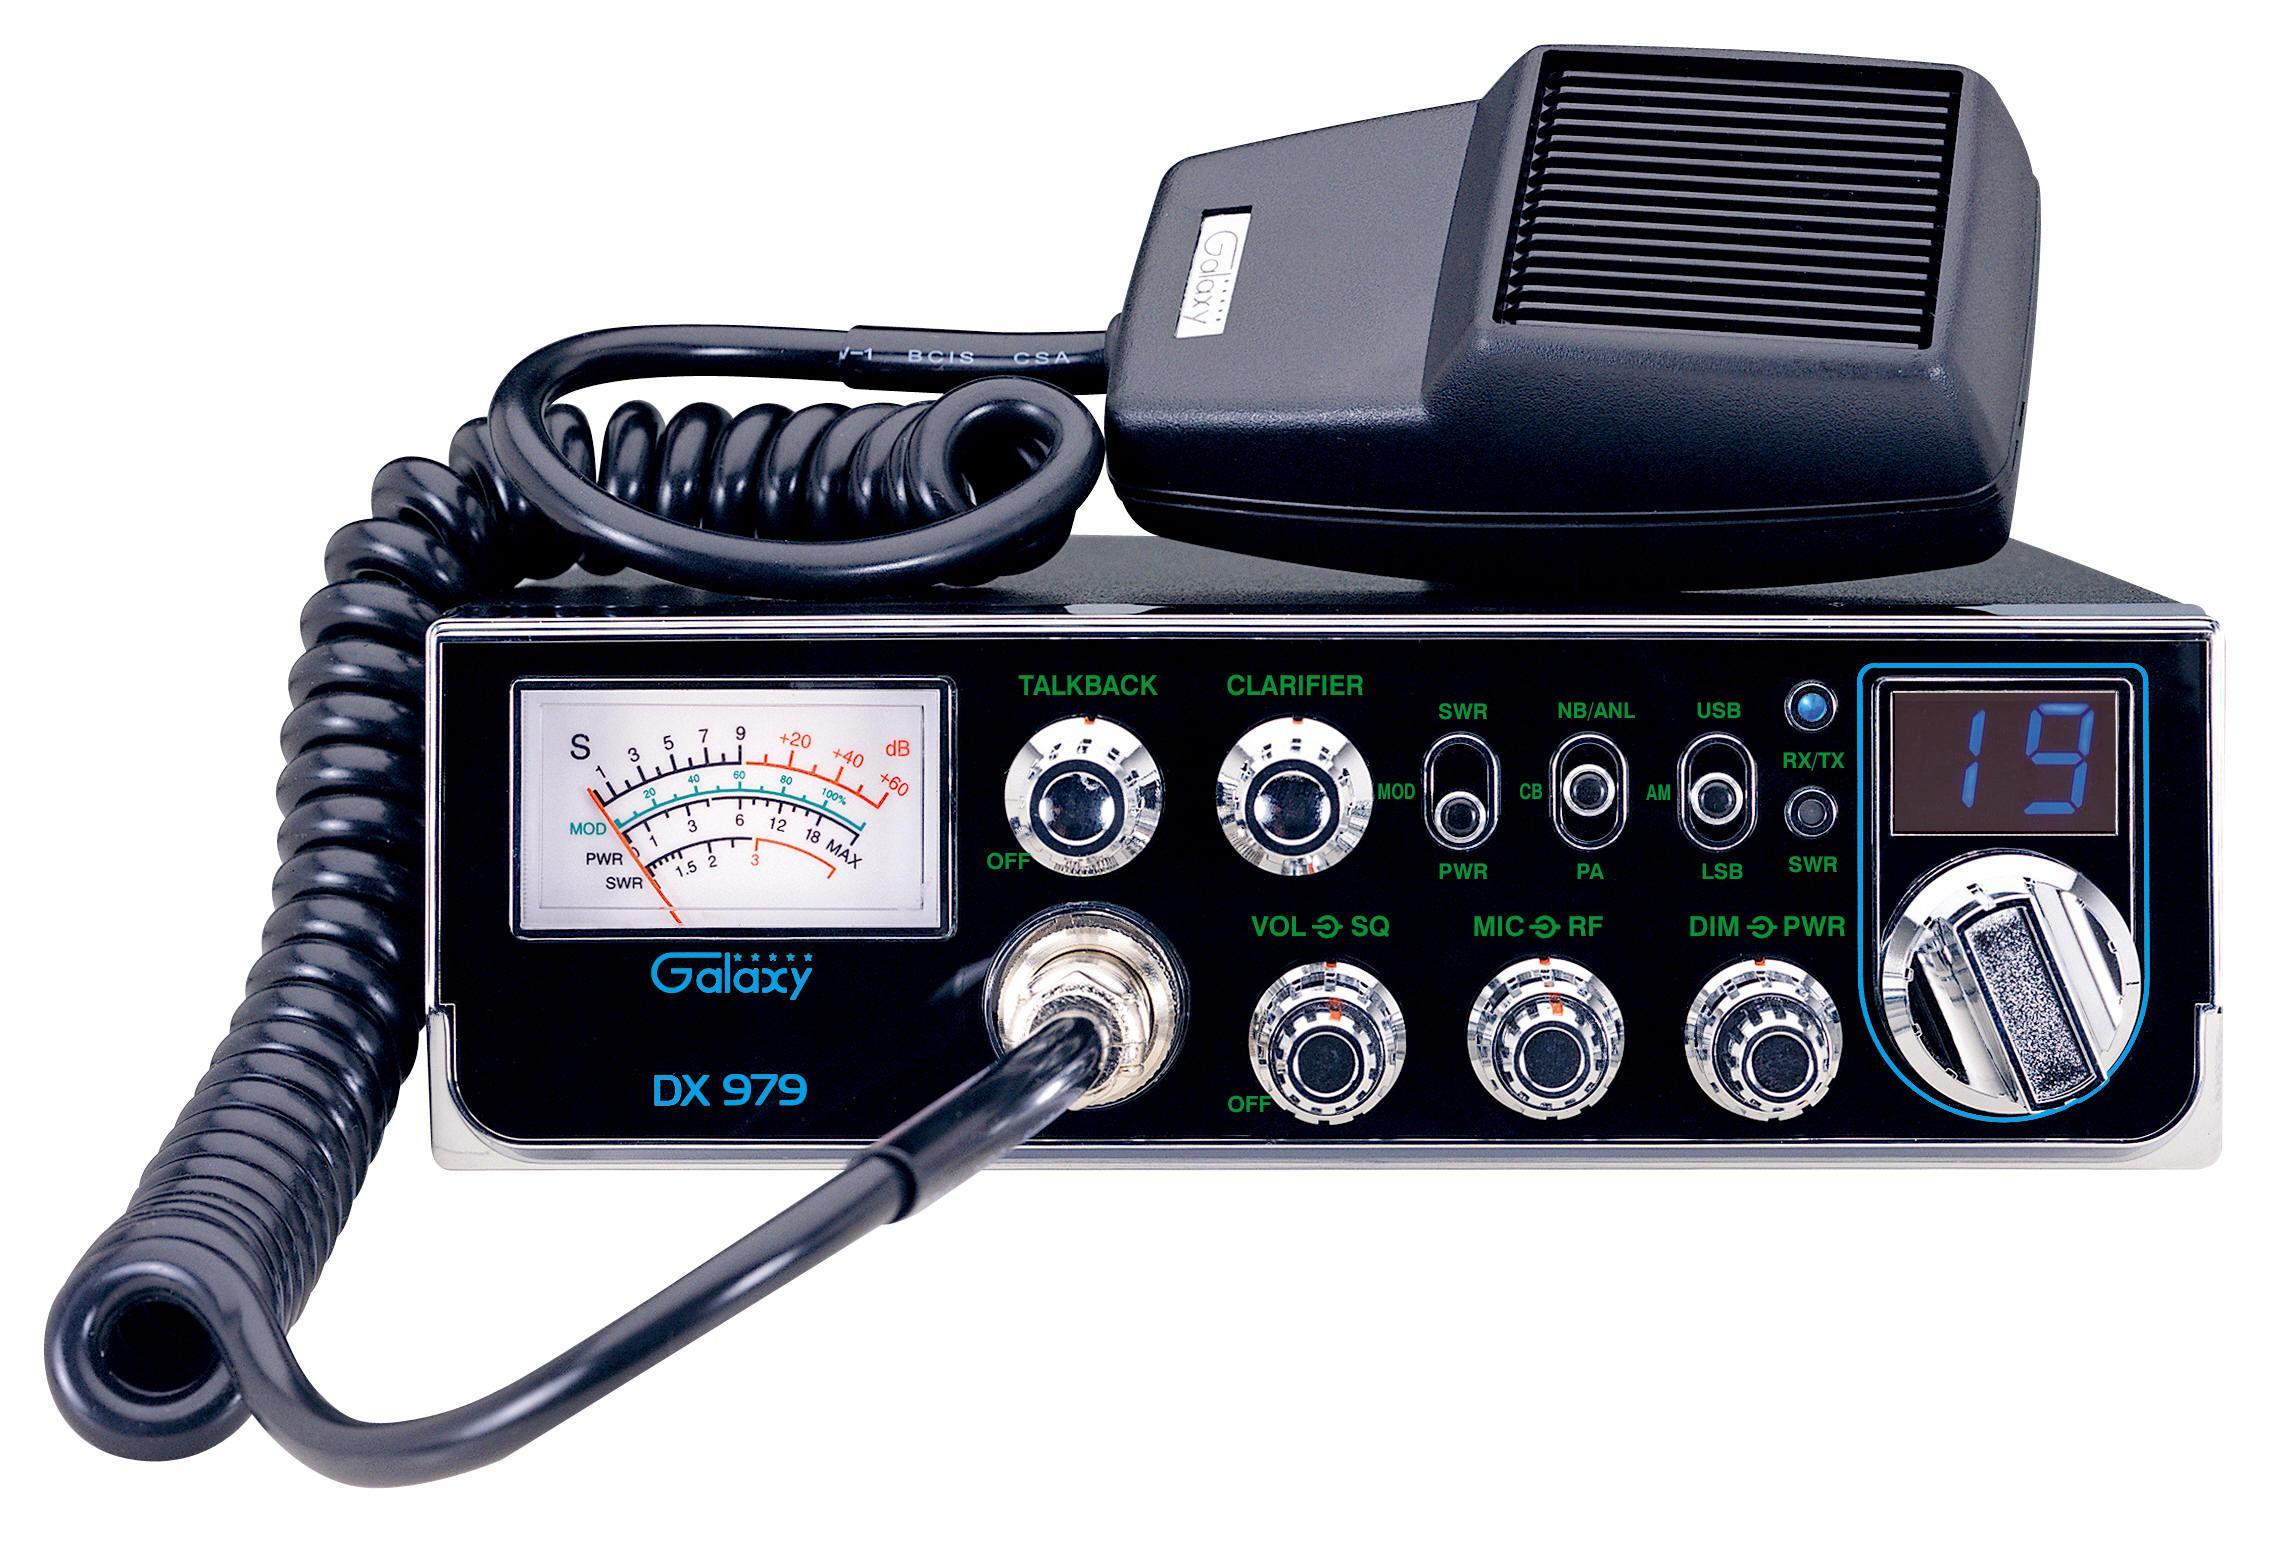 Uniden Pro640e Am Ssb Cb Radio further cbradio also 252109098864 in addition PowegQY25OI also Dx979 main pcb. on galaxy dx 979